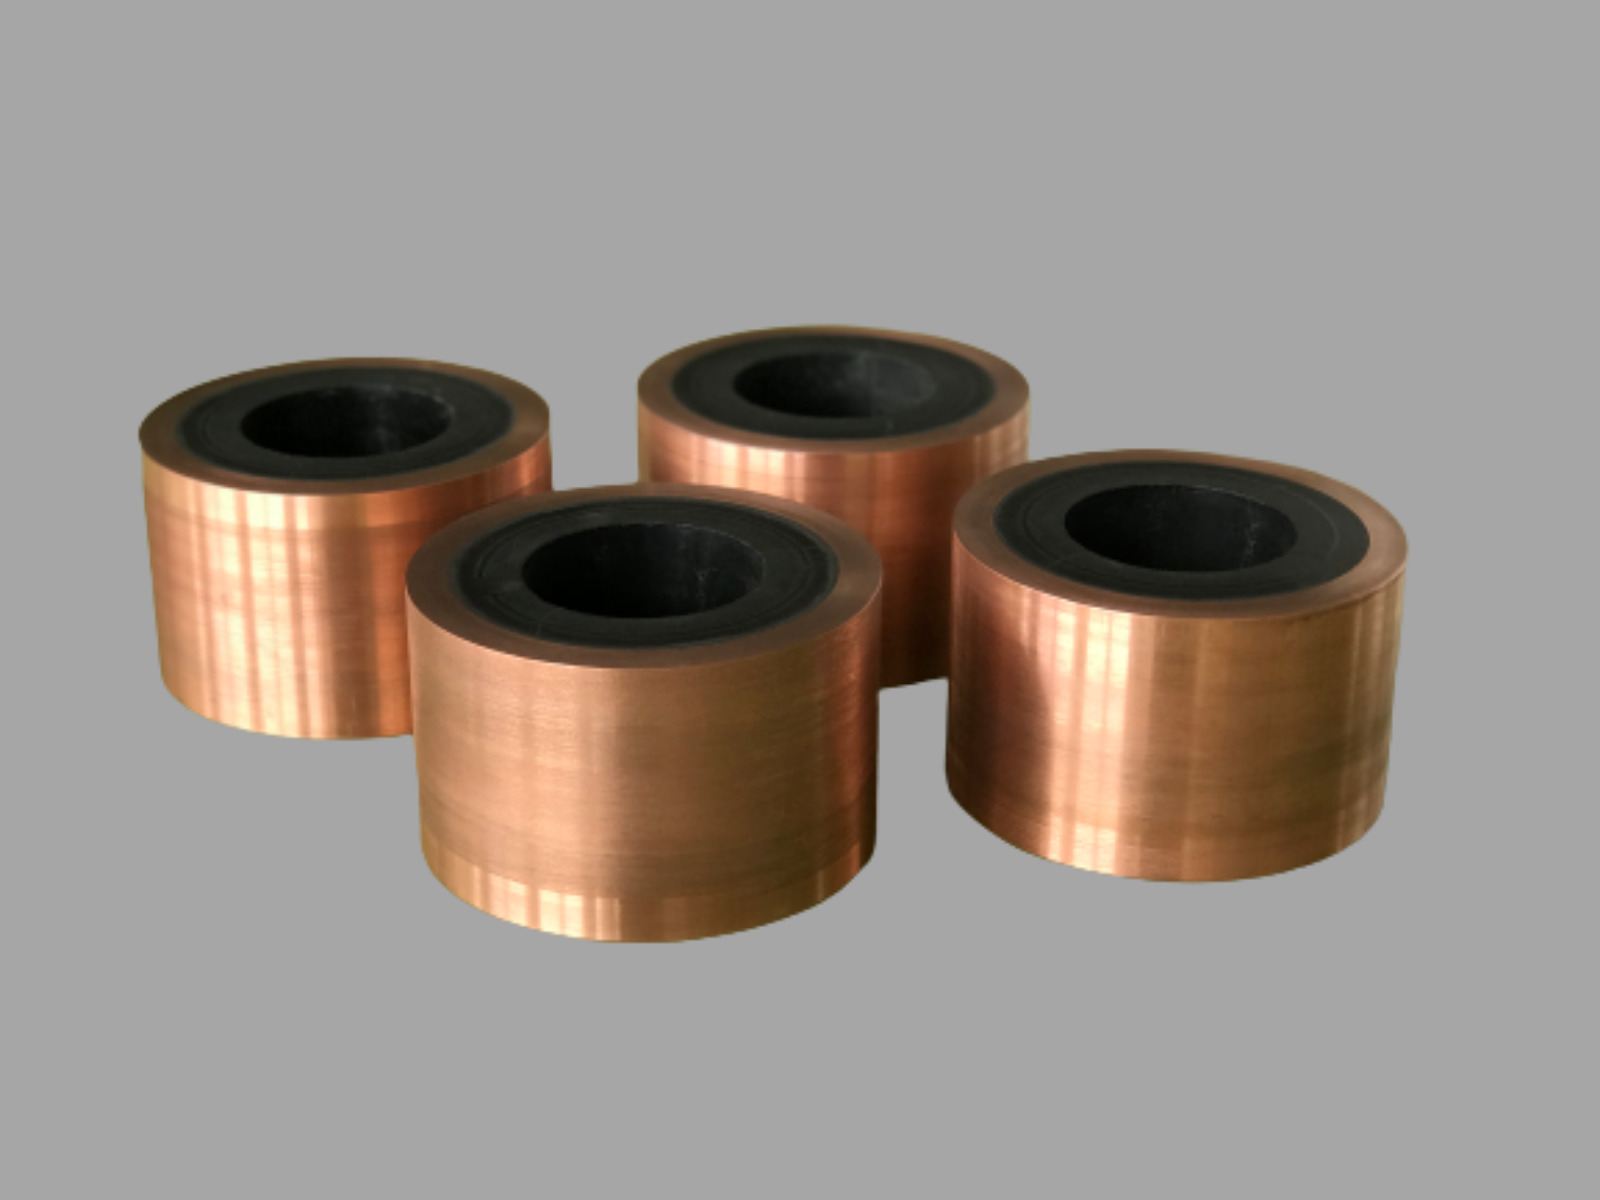 80 mm HTS rings